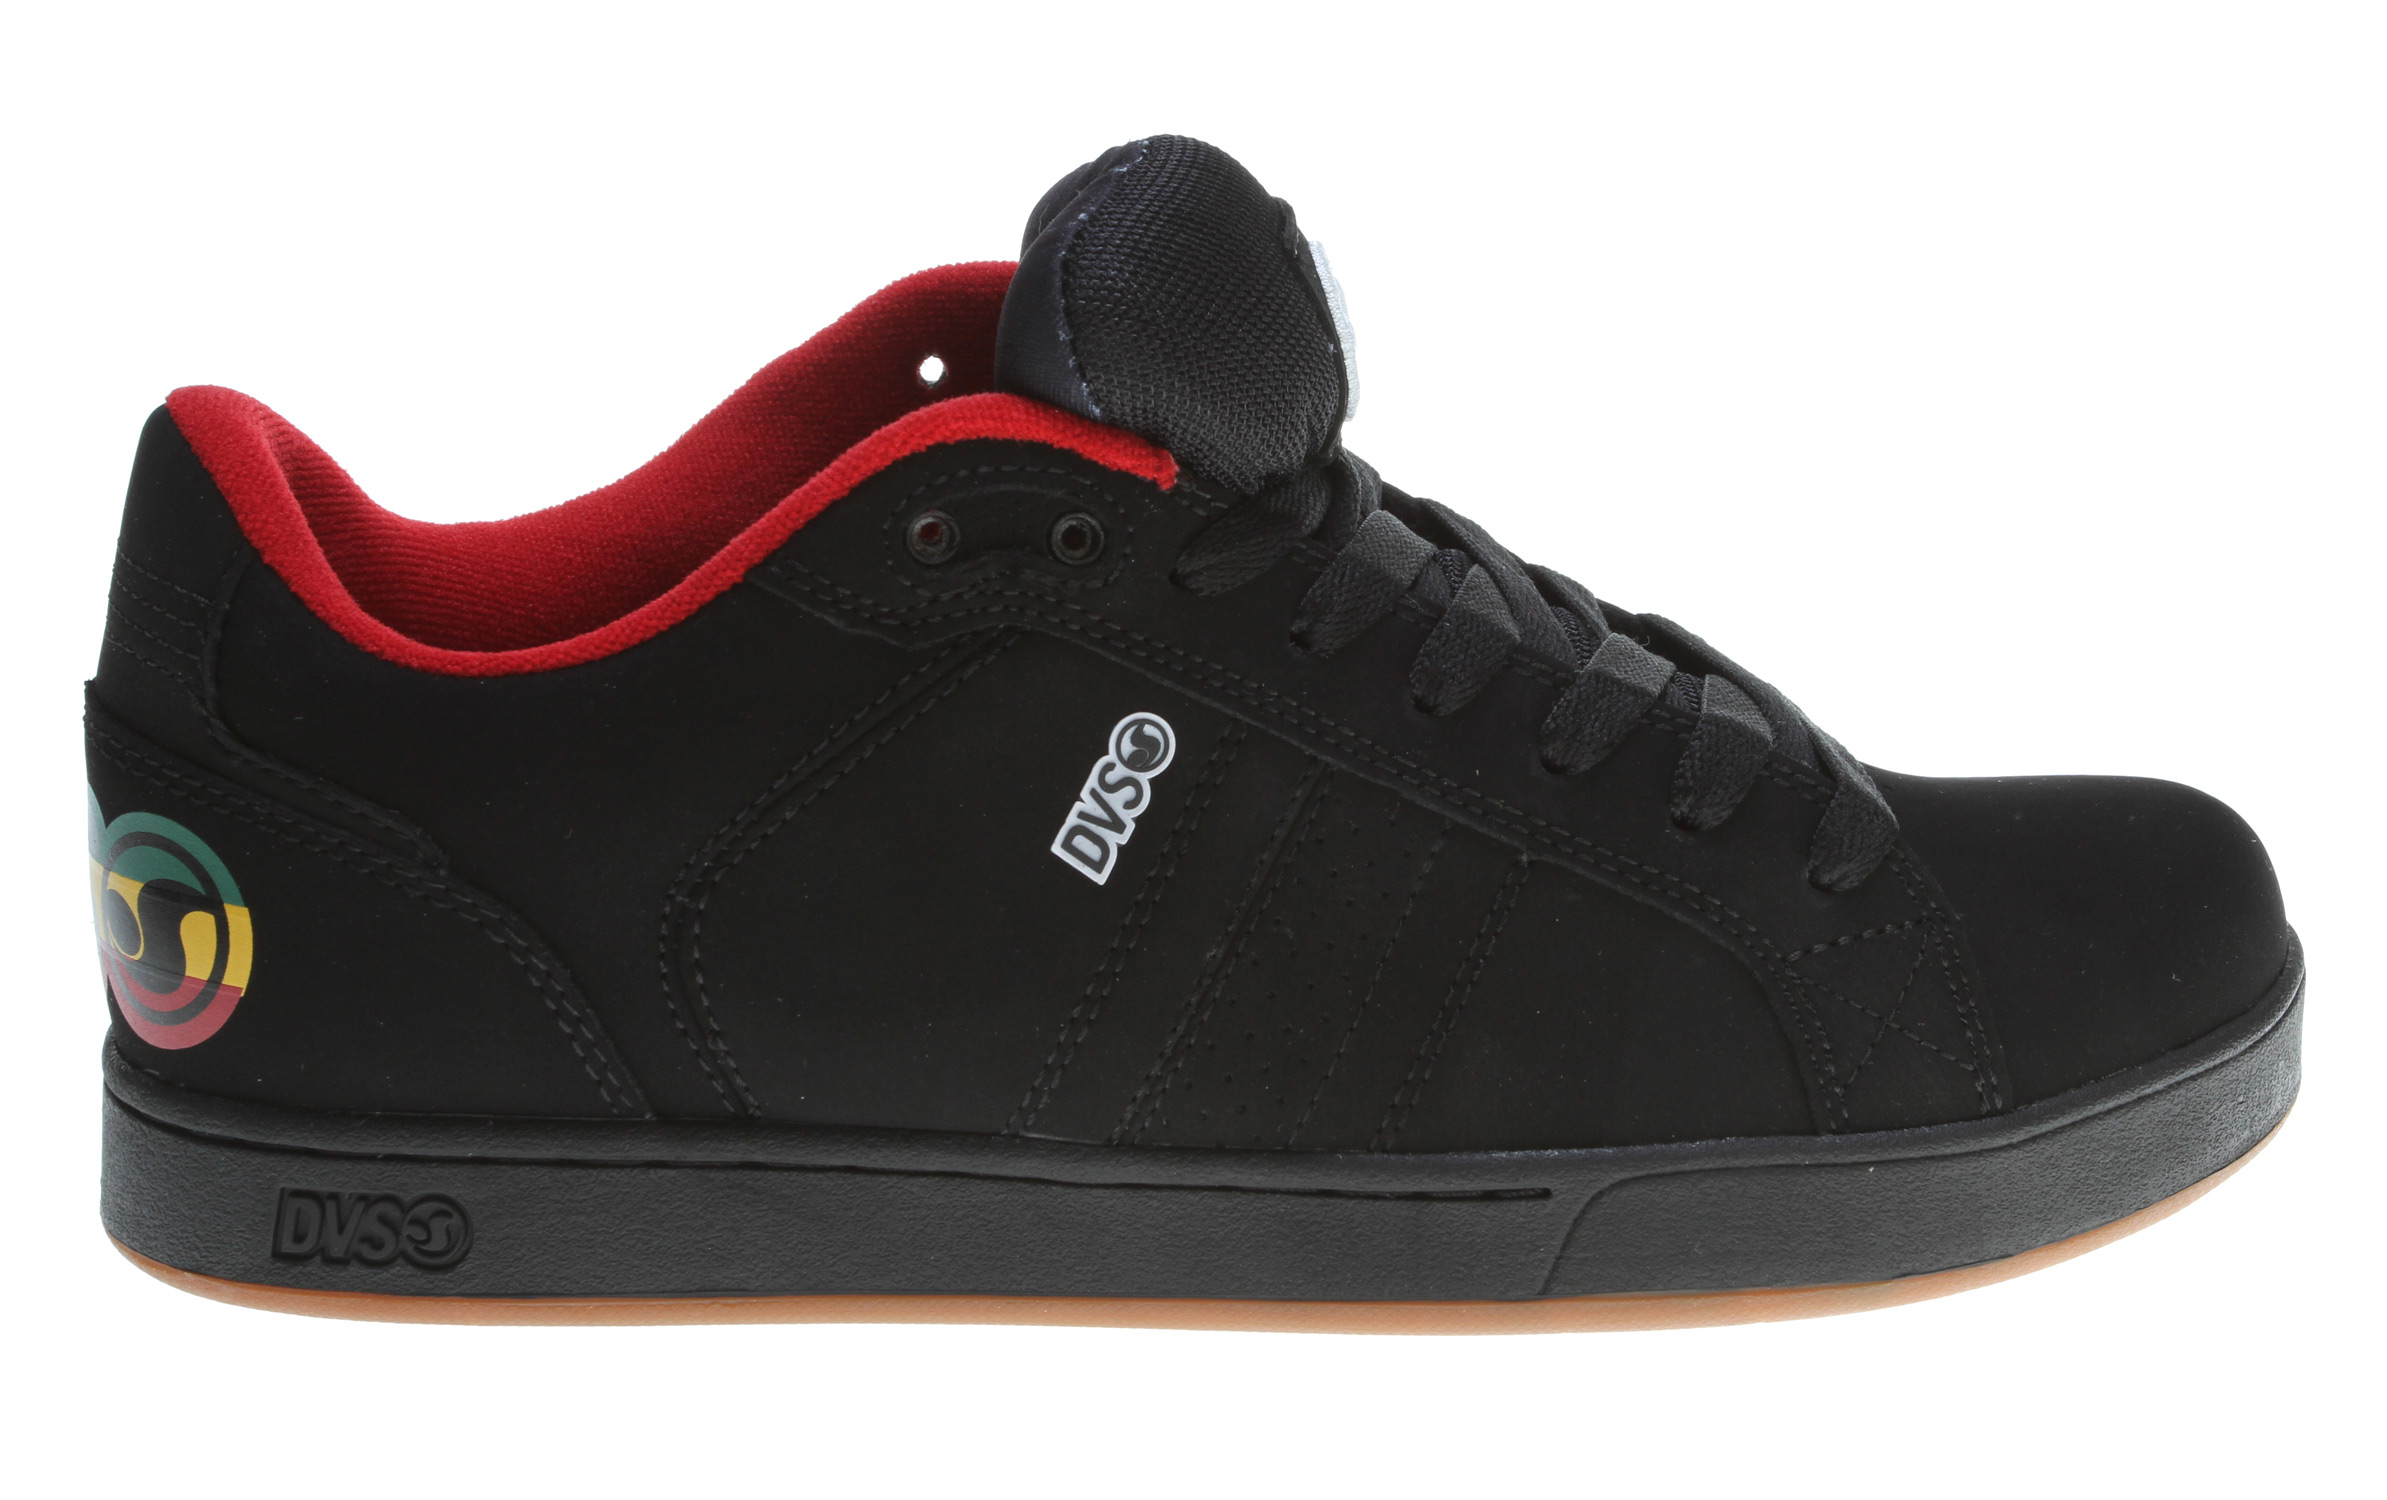 Skateboard Key Features of the DVS Charge Skate Shoes: Welded TPR logo detail 3-D embroidered tongue logo TPU blind eyelets Non-slip dual tread outsole design Sure-fit elastic tongue support Bruise control technology-ultra - $45.95